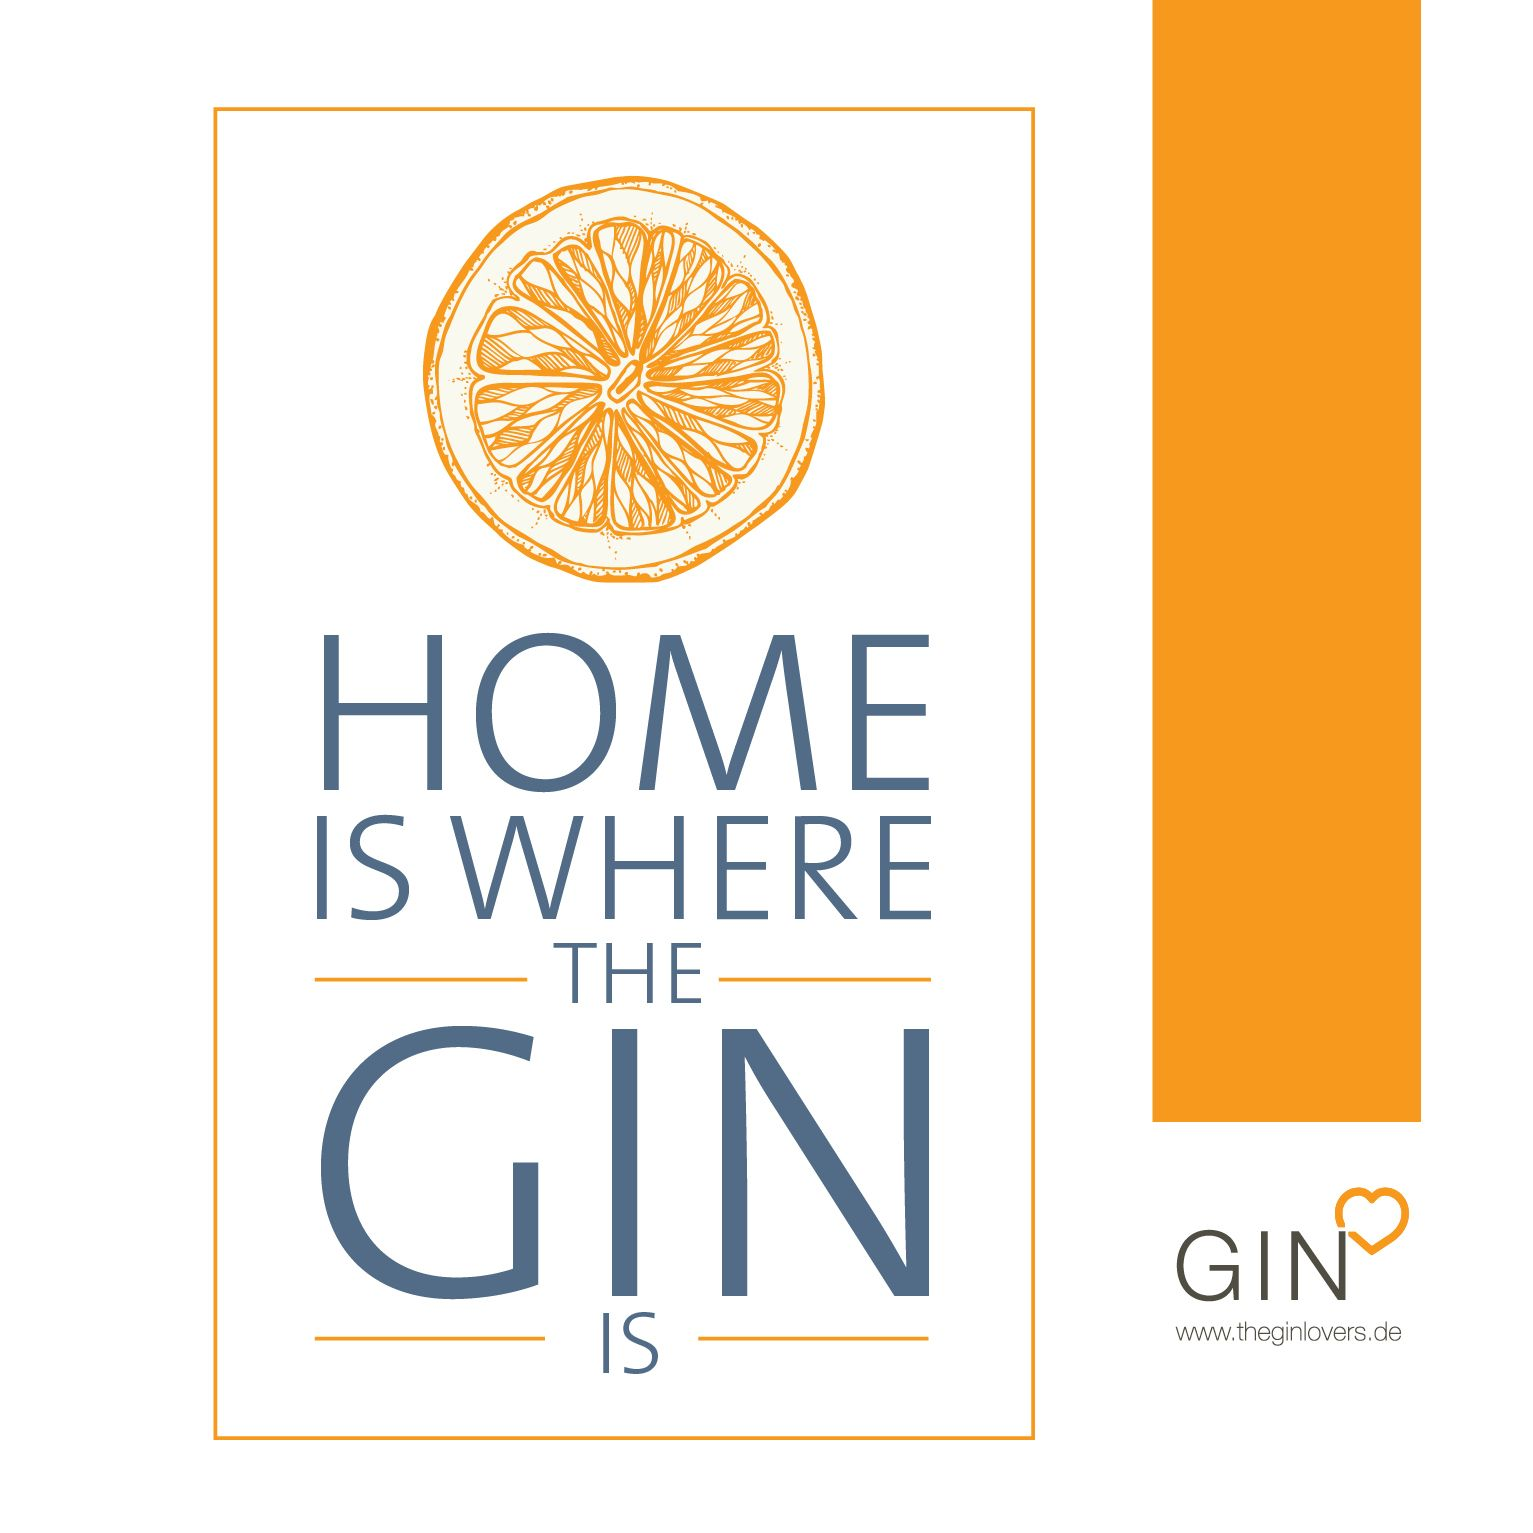 home is where the gin is. gin quotes, gin zitate. humorvolles